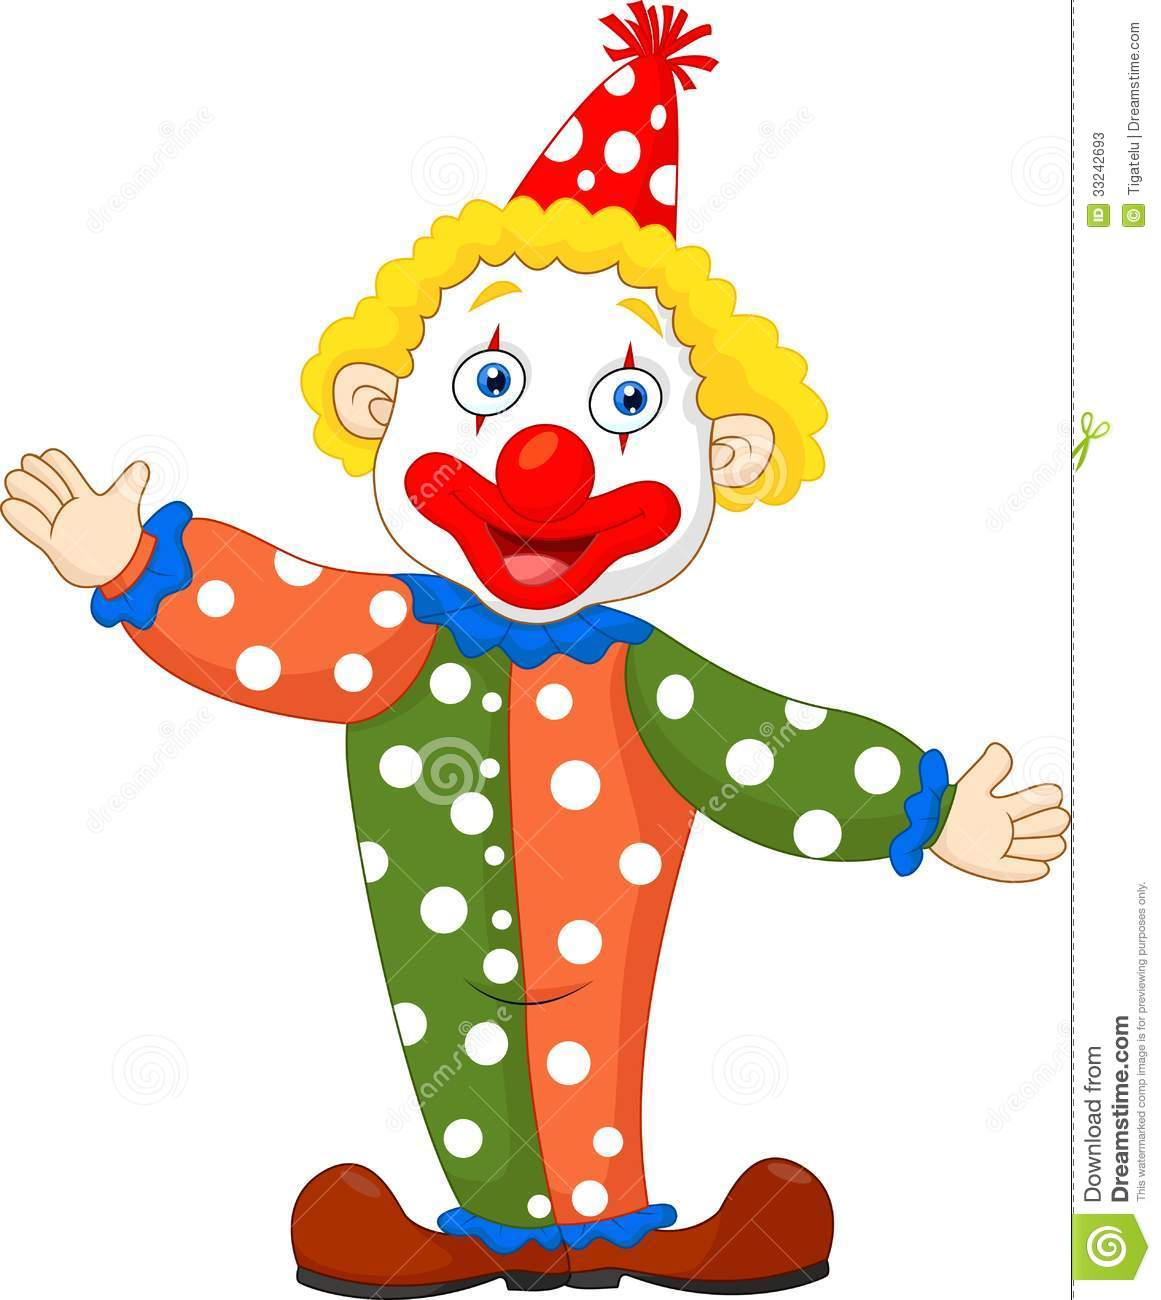 Cartoon Clown Clipart - Clipart Kid